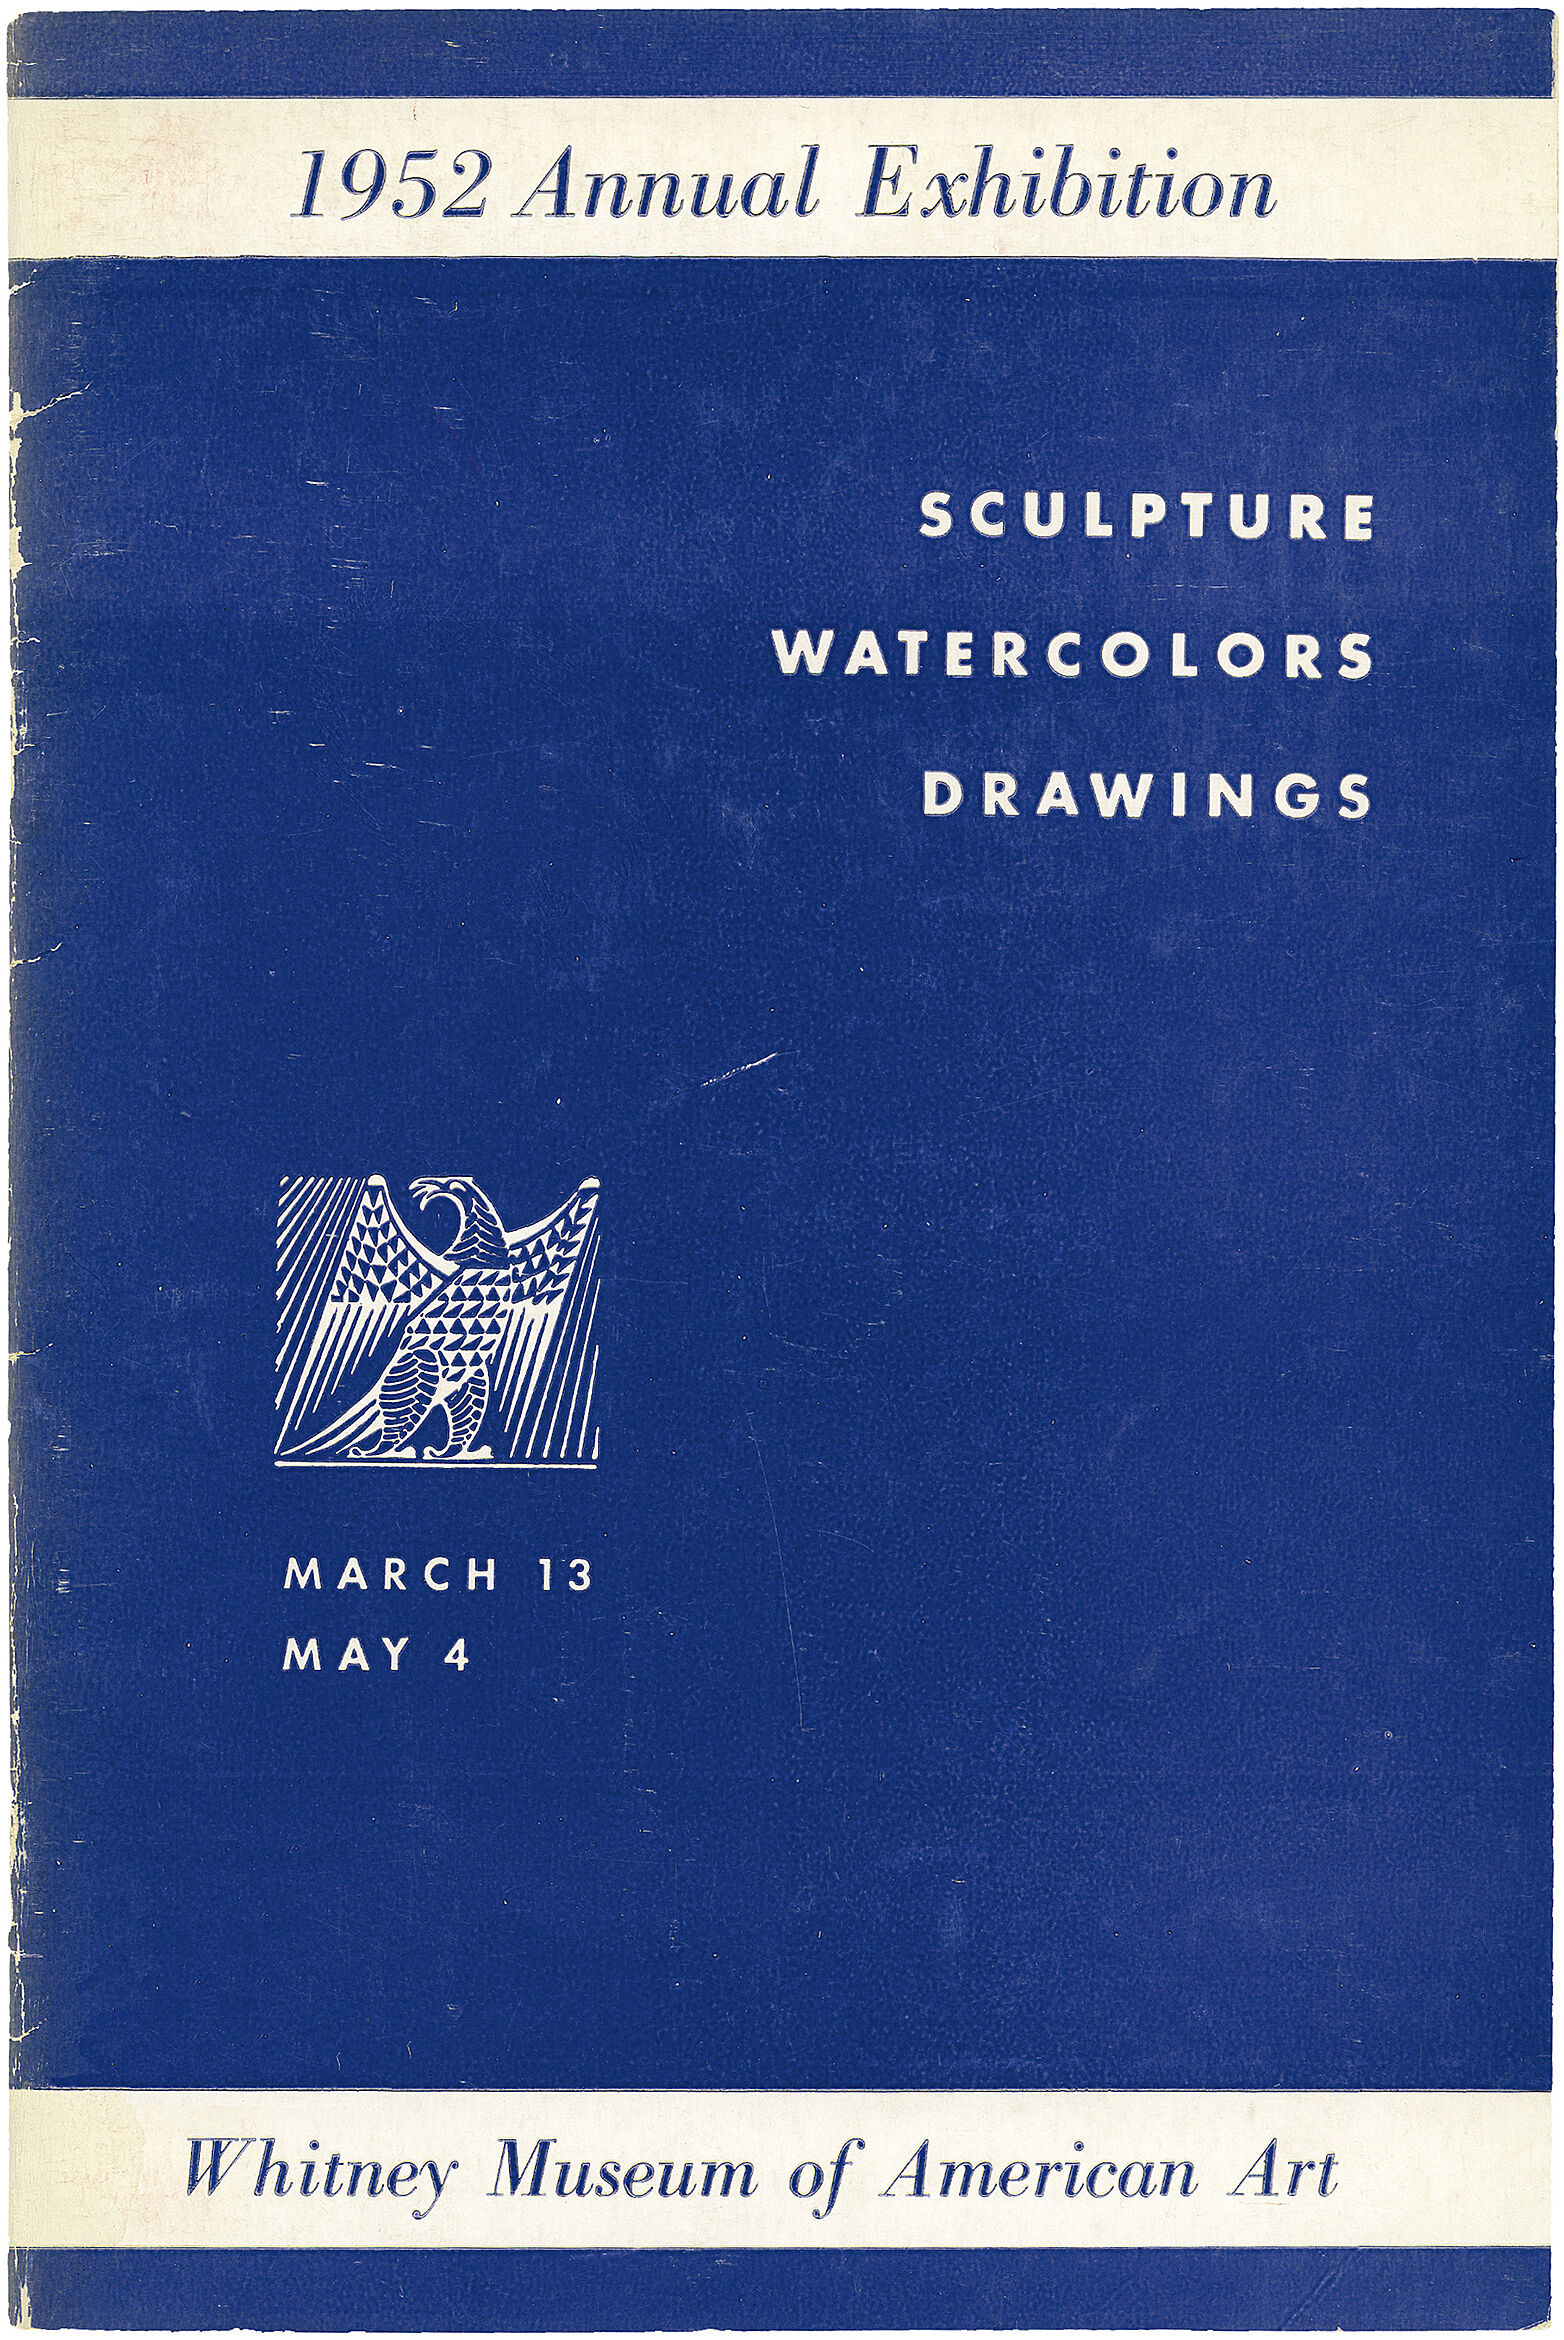 Cover for 1952 Annual Exhibition of Contemporary American Sculpture, Watercolors and Drawings catalogue